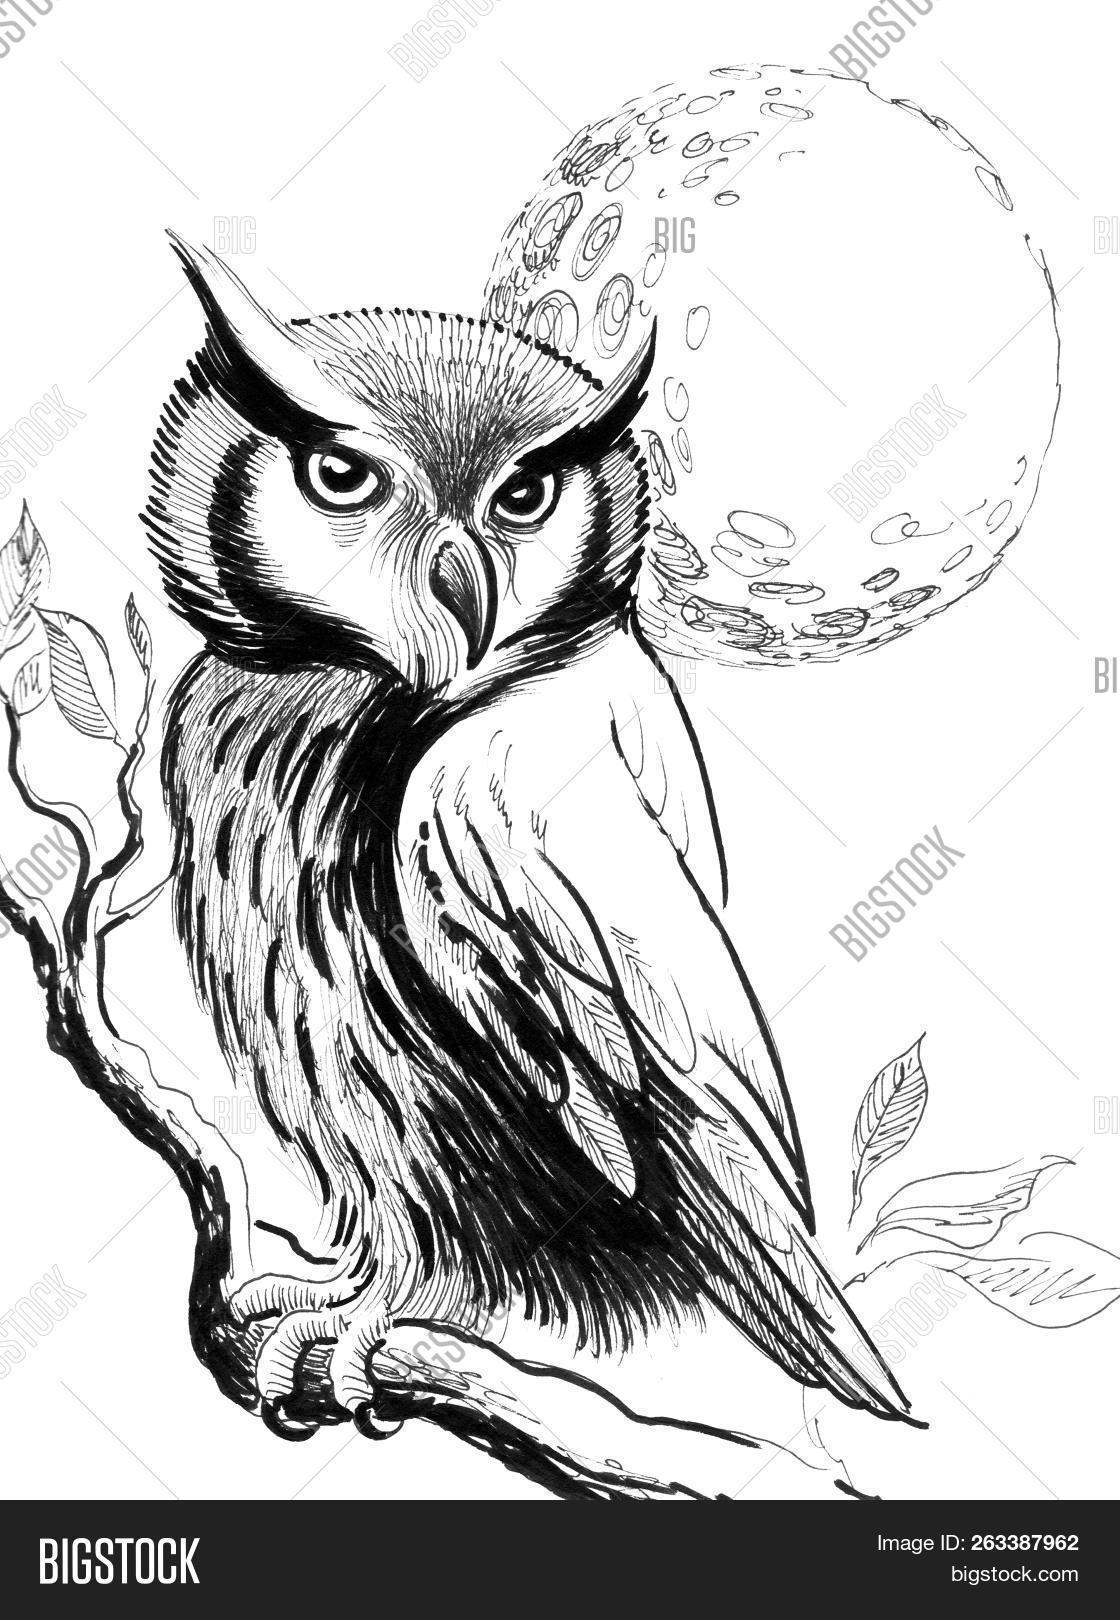 Owl Bird Sitting On Image Photo Free Trial Bigstock